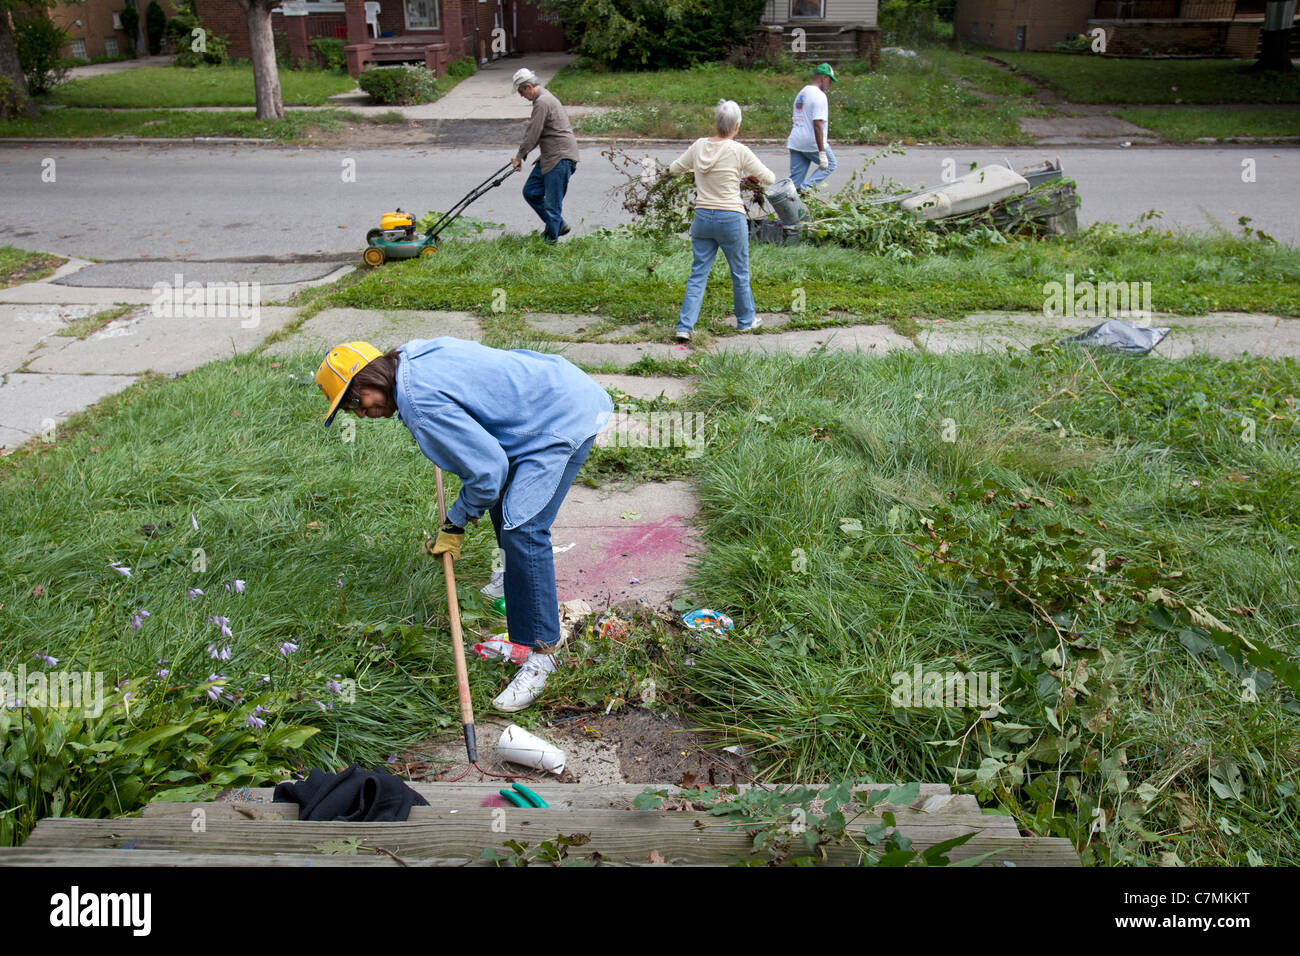 Detroit, Michigan - Members of the Three Mile Drive block club clean trash and weeds from a vacant home in their - Stock Image